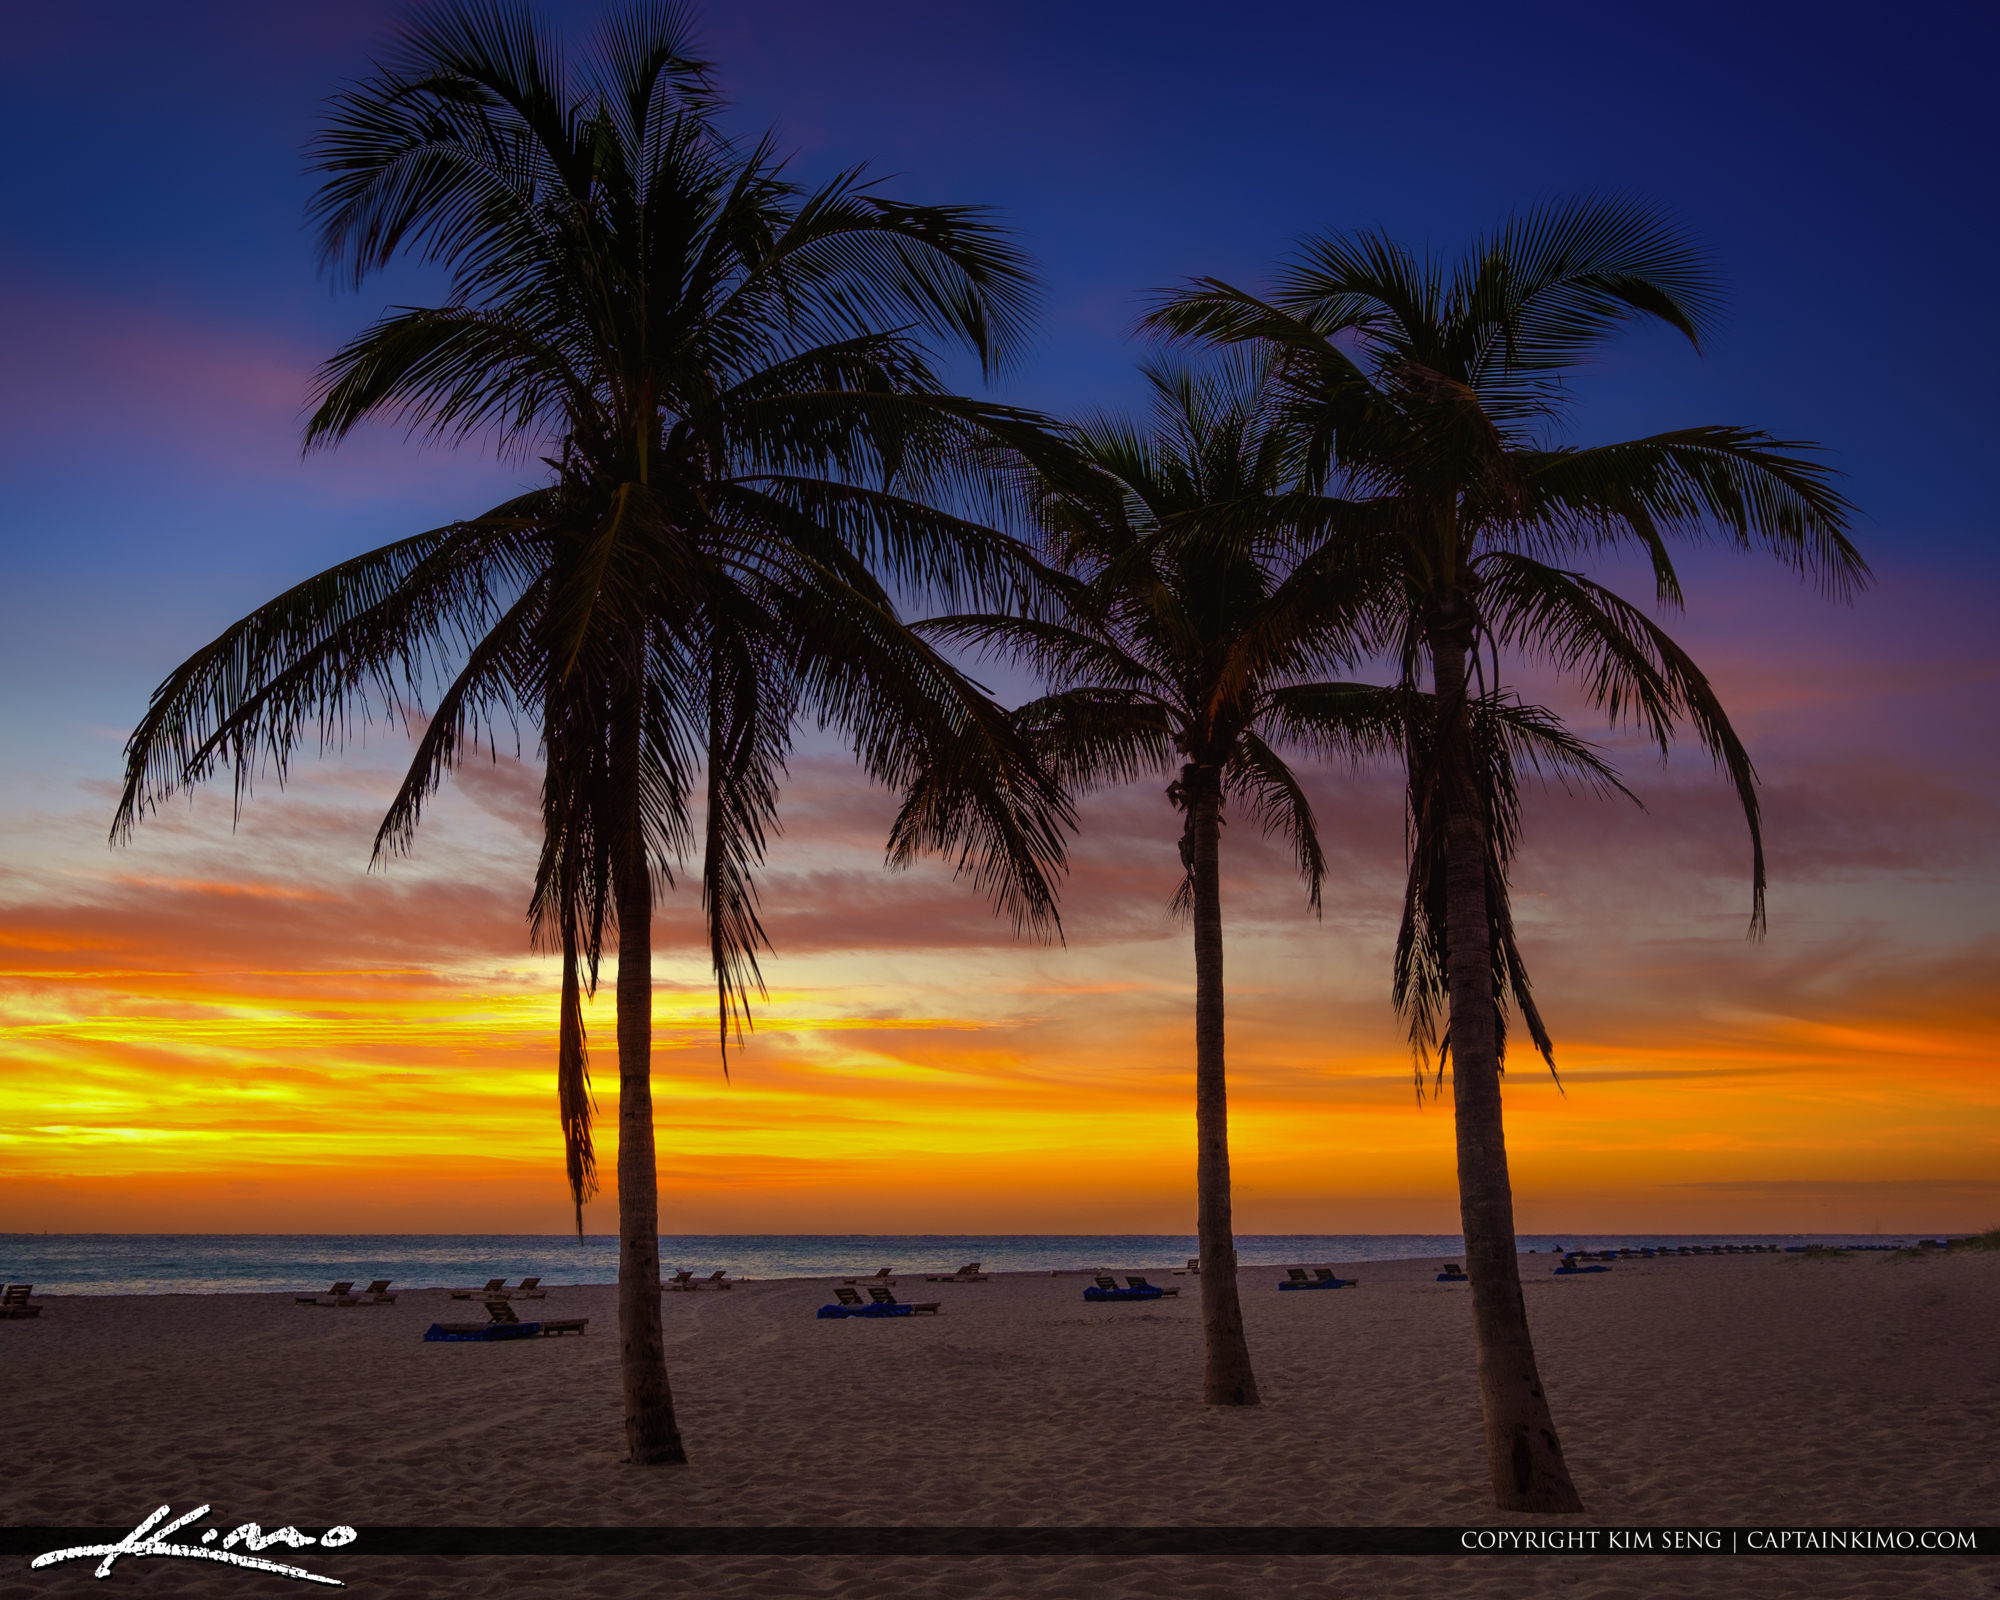 Coconut Tree at Singer Island Beach in Rvieira Beach Florida Squ